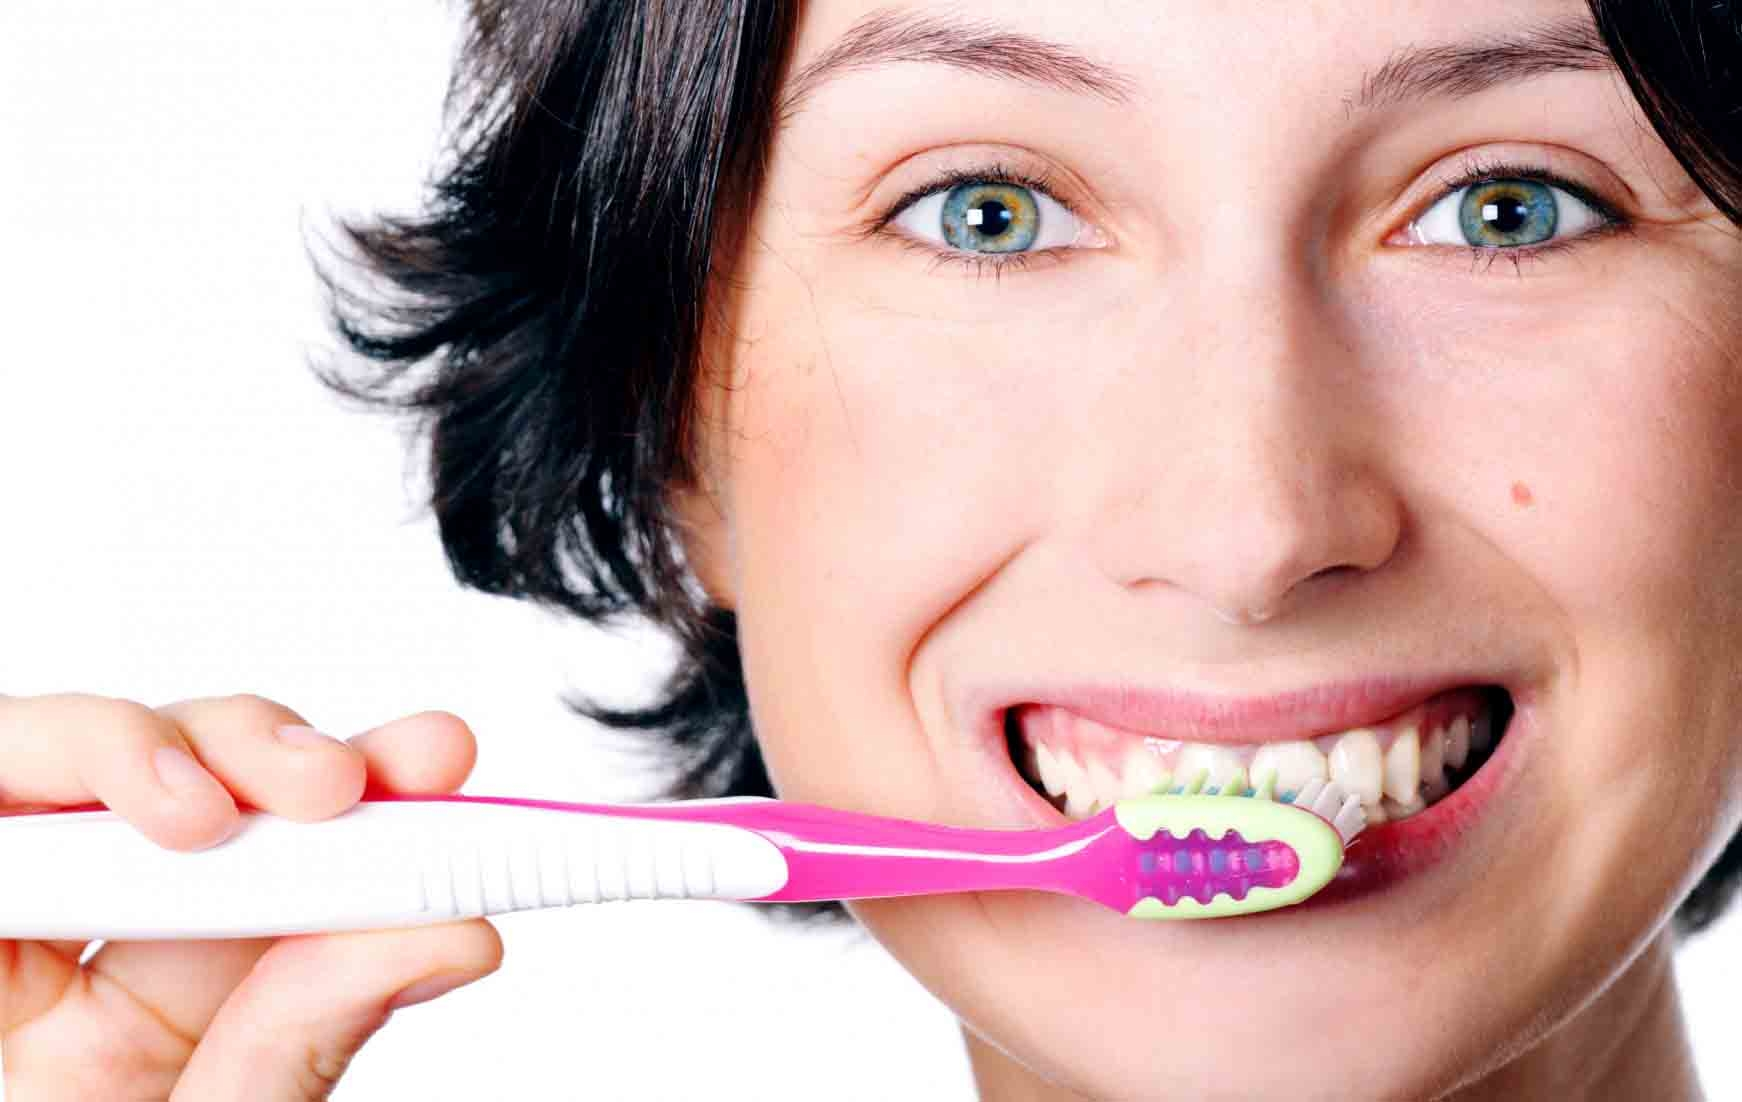 Make The Smile Beautiful And Impressive With Best Orthodontic Products